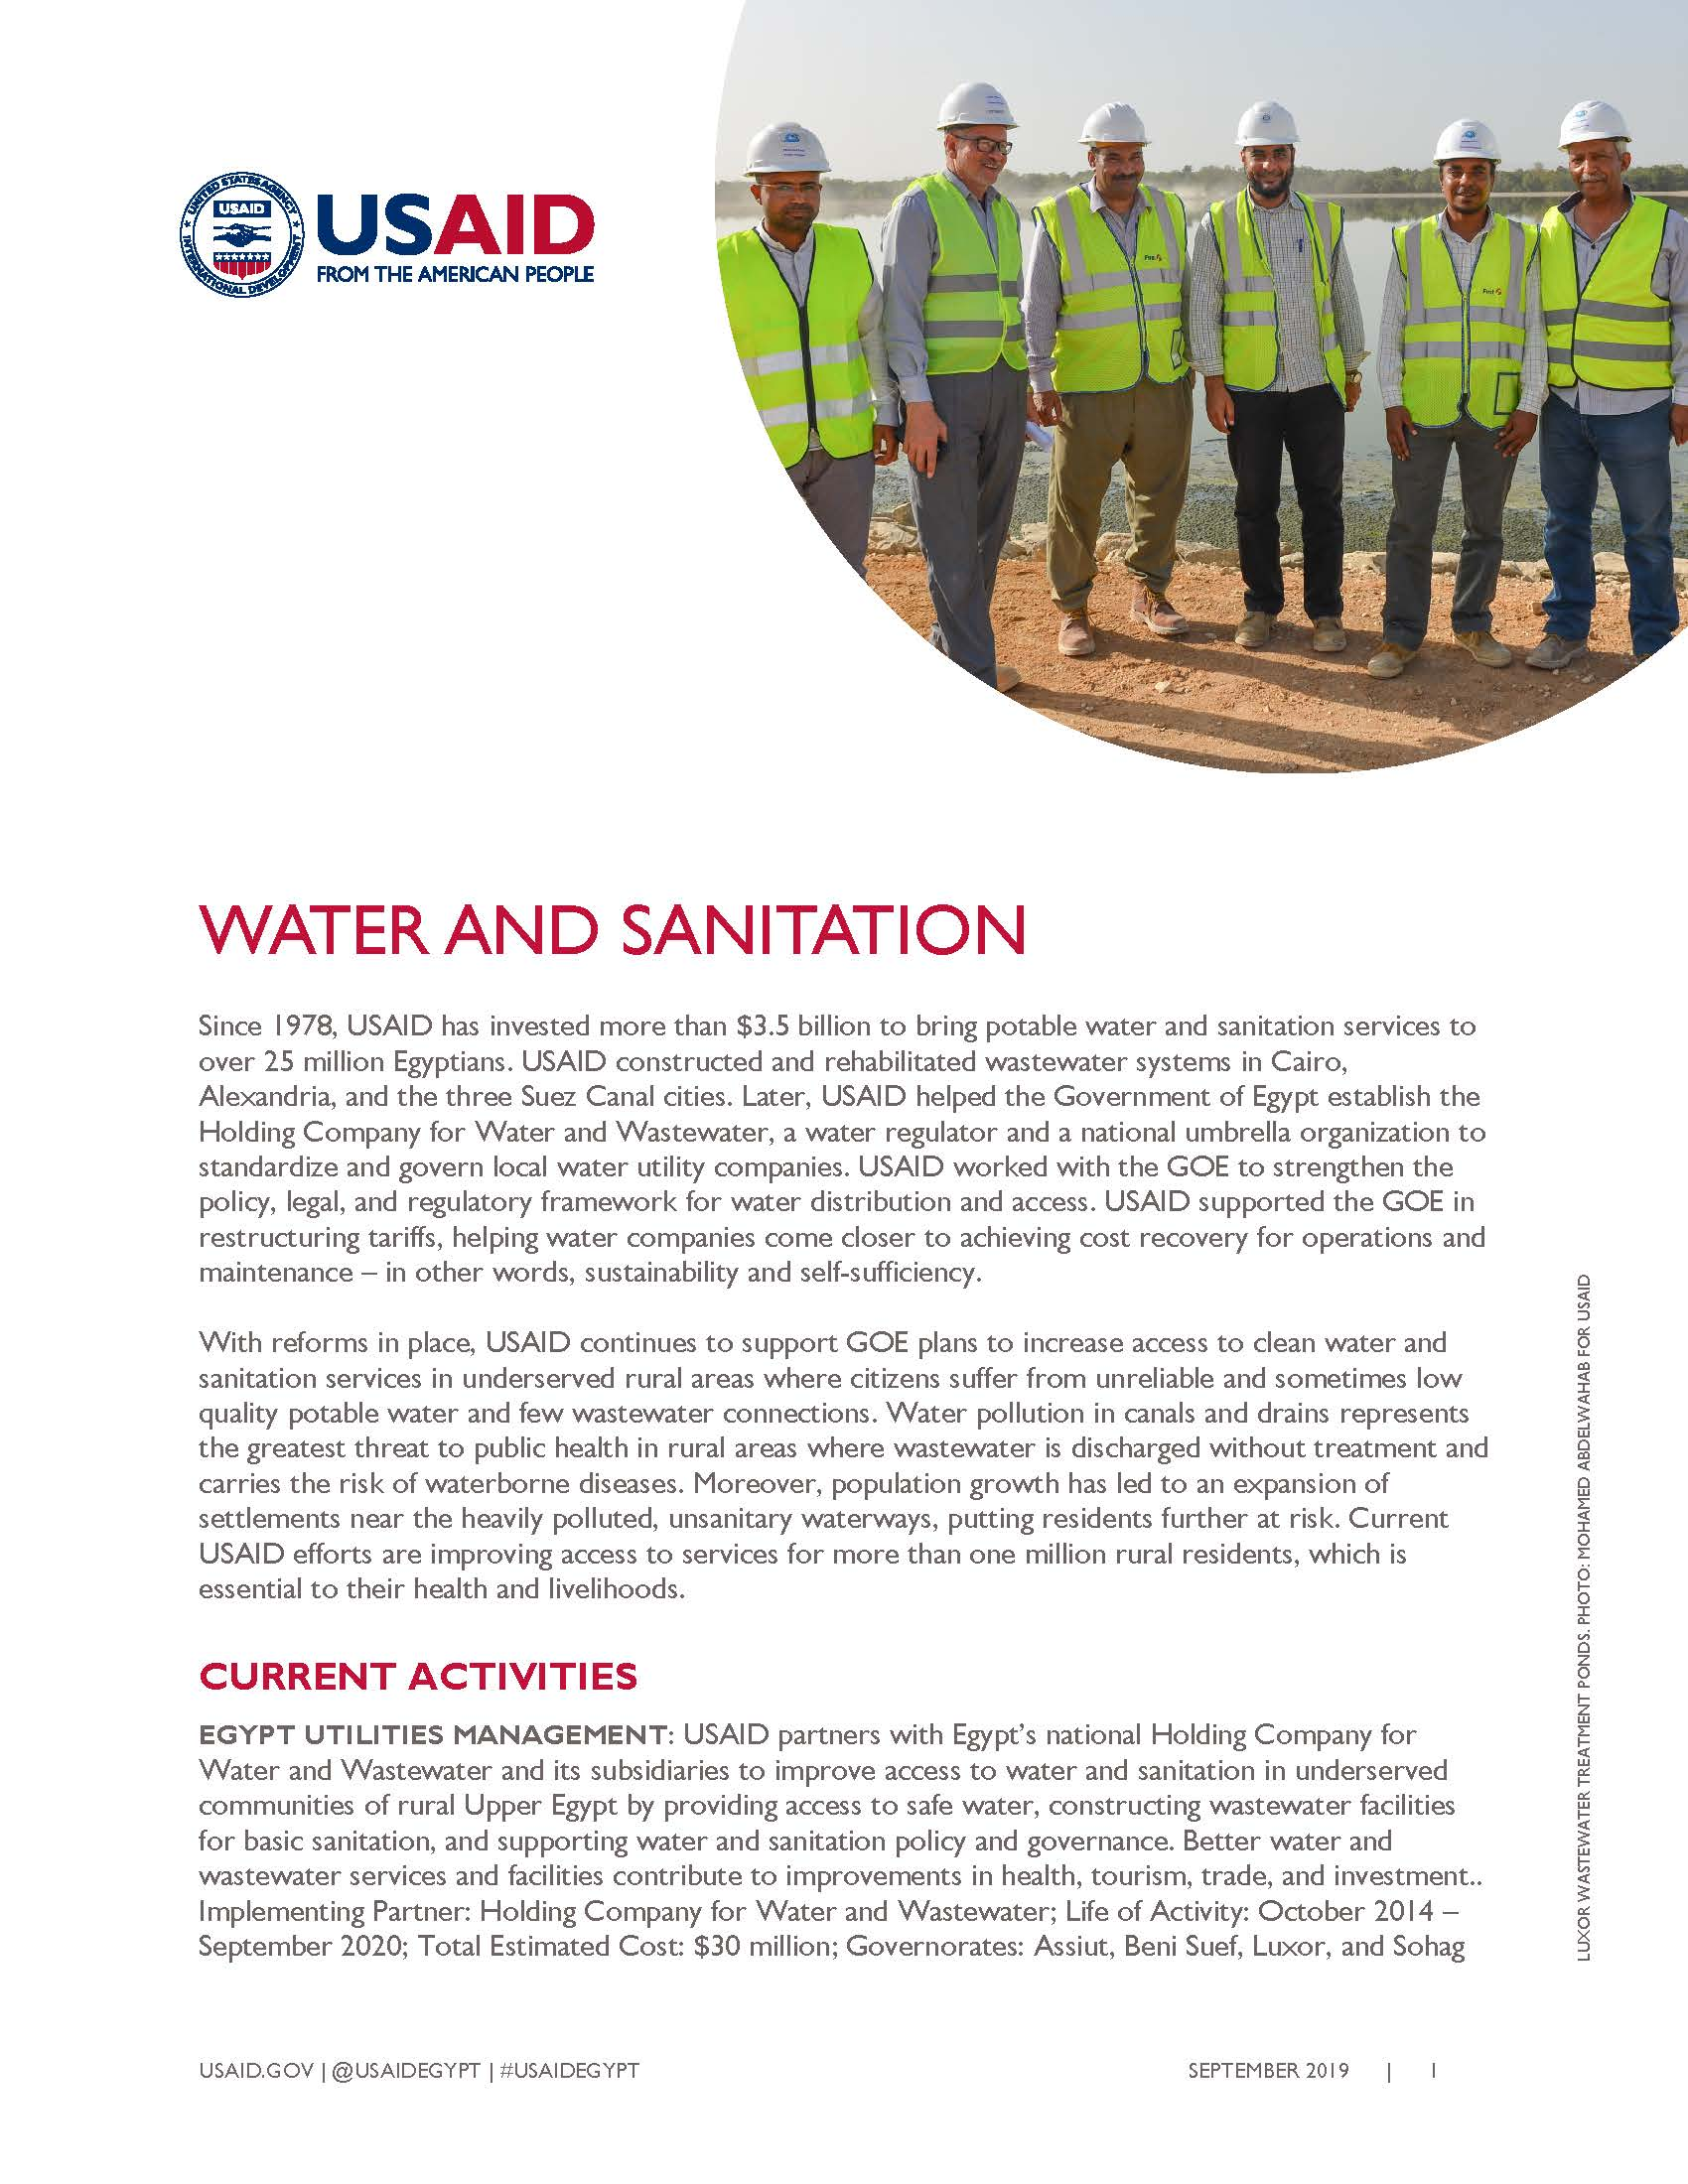 USAID/Egypt Water Fact Sheet